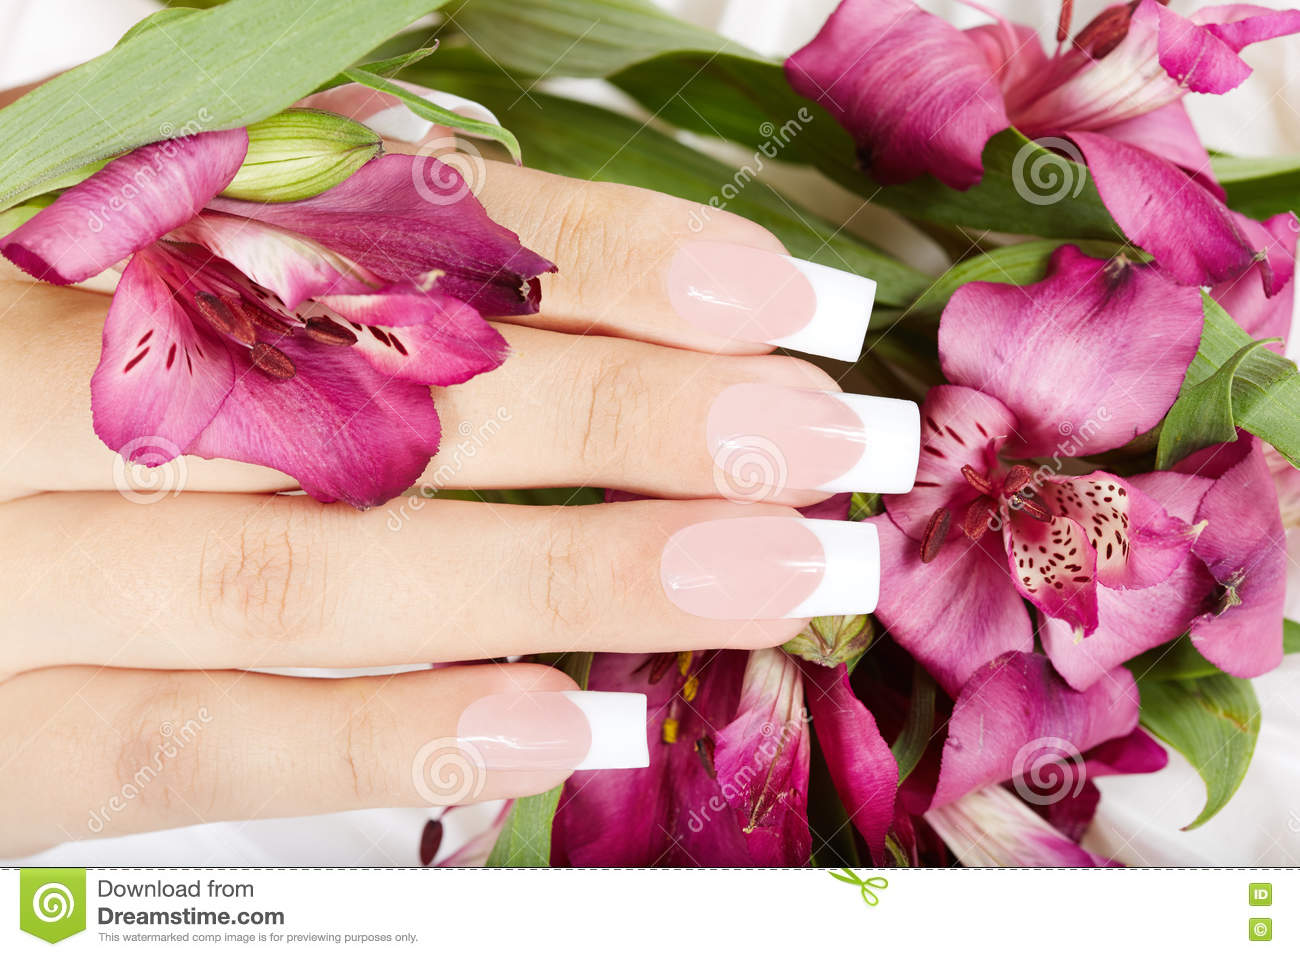 Hand with long artificial french manicured nails and lily flowers hand with long artificial french manicured nails and lily flowers izmirmasajfo